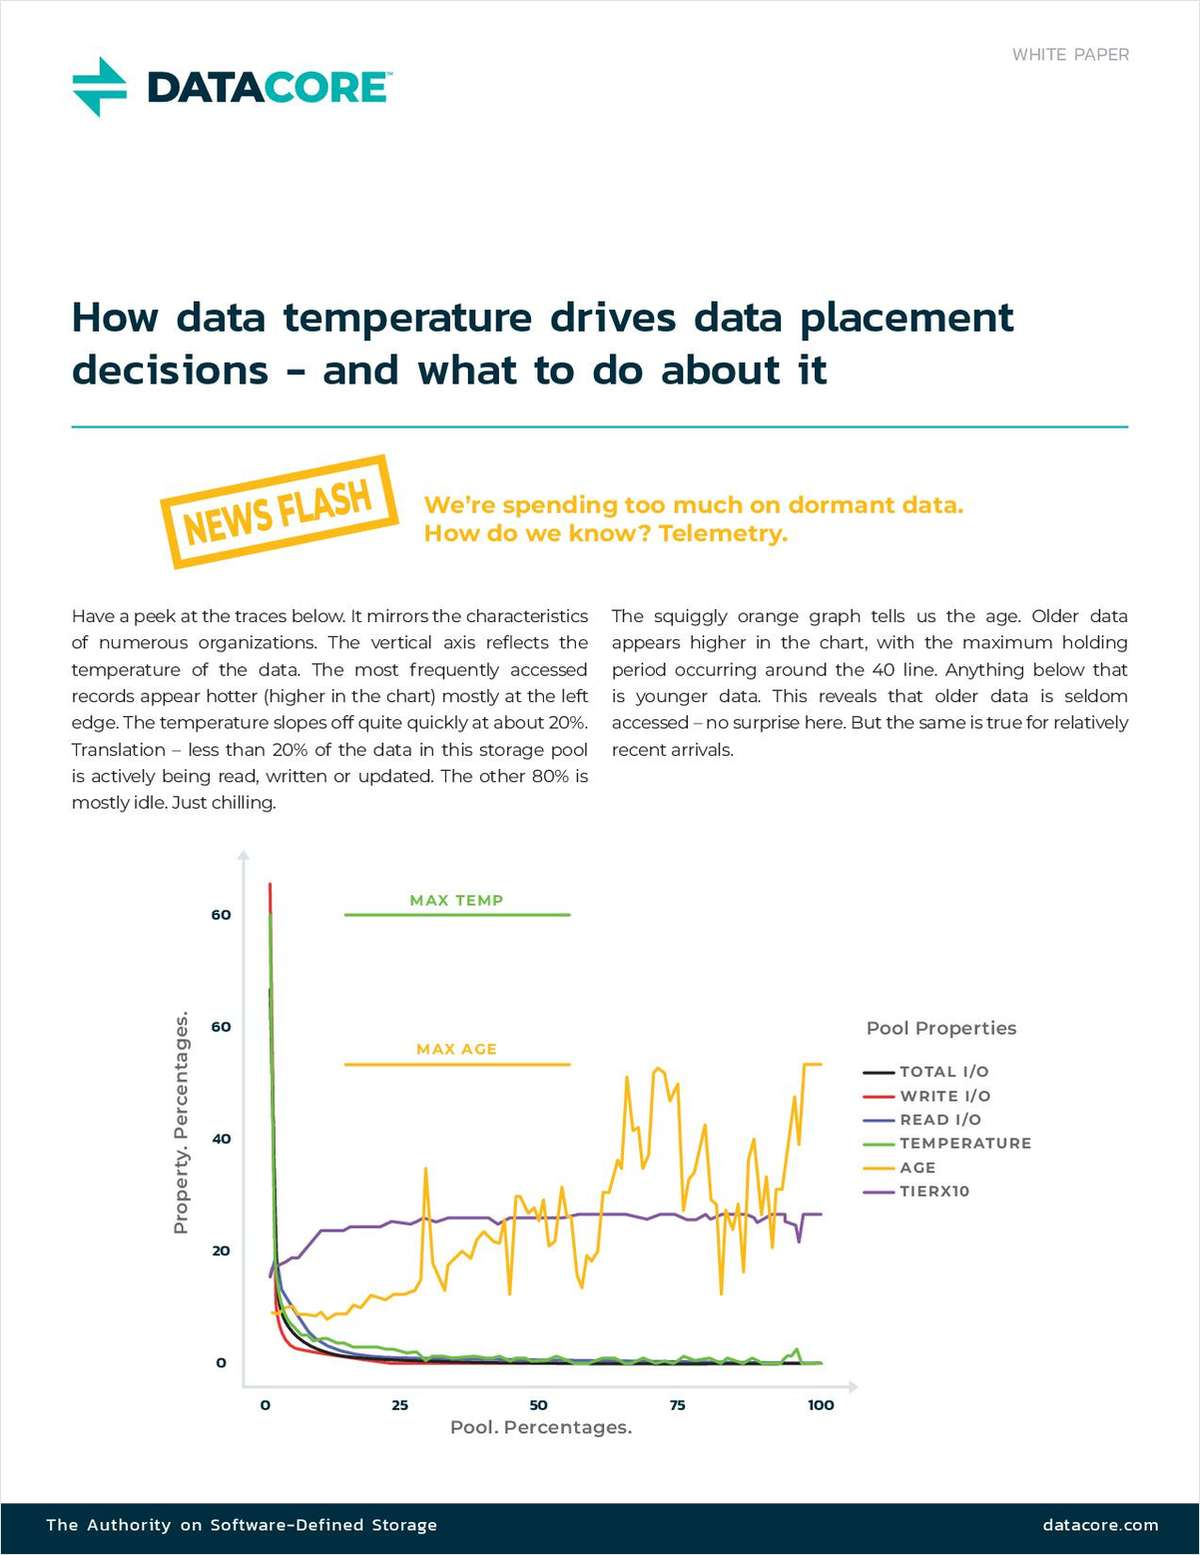 How Data Temperature Drives Data Placement Decisions--and What to Do About It